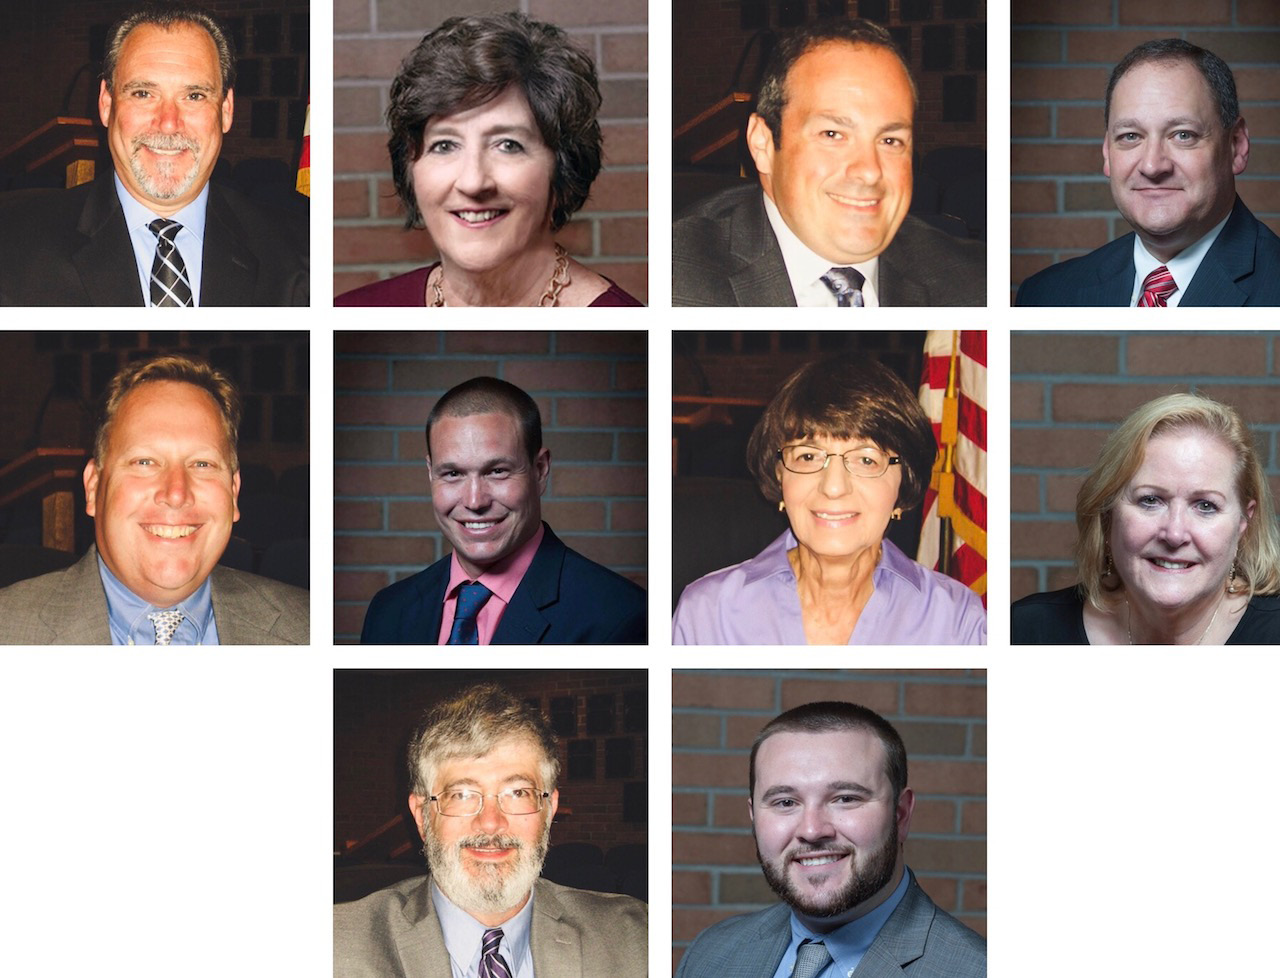 Candidates for Plainville Town Council.